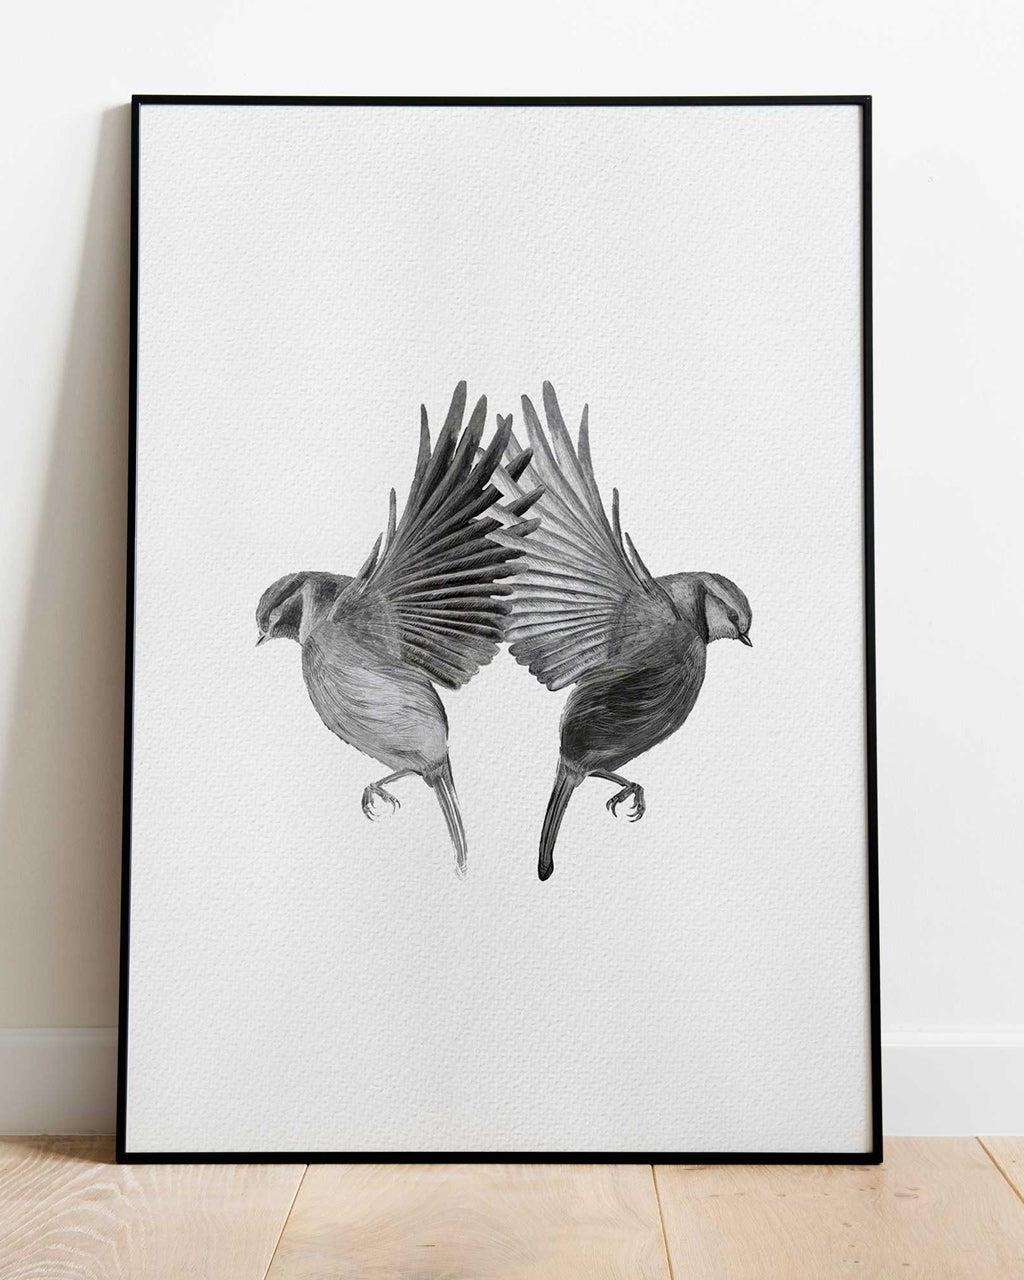 Two Blue Tits - print of original illustration on watercolour paper